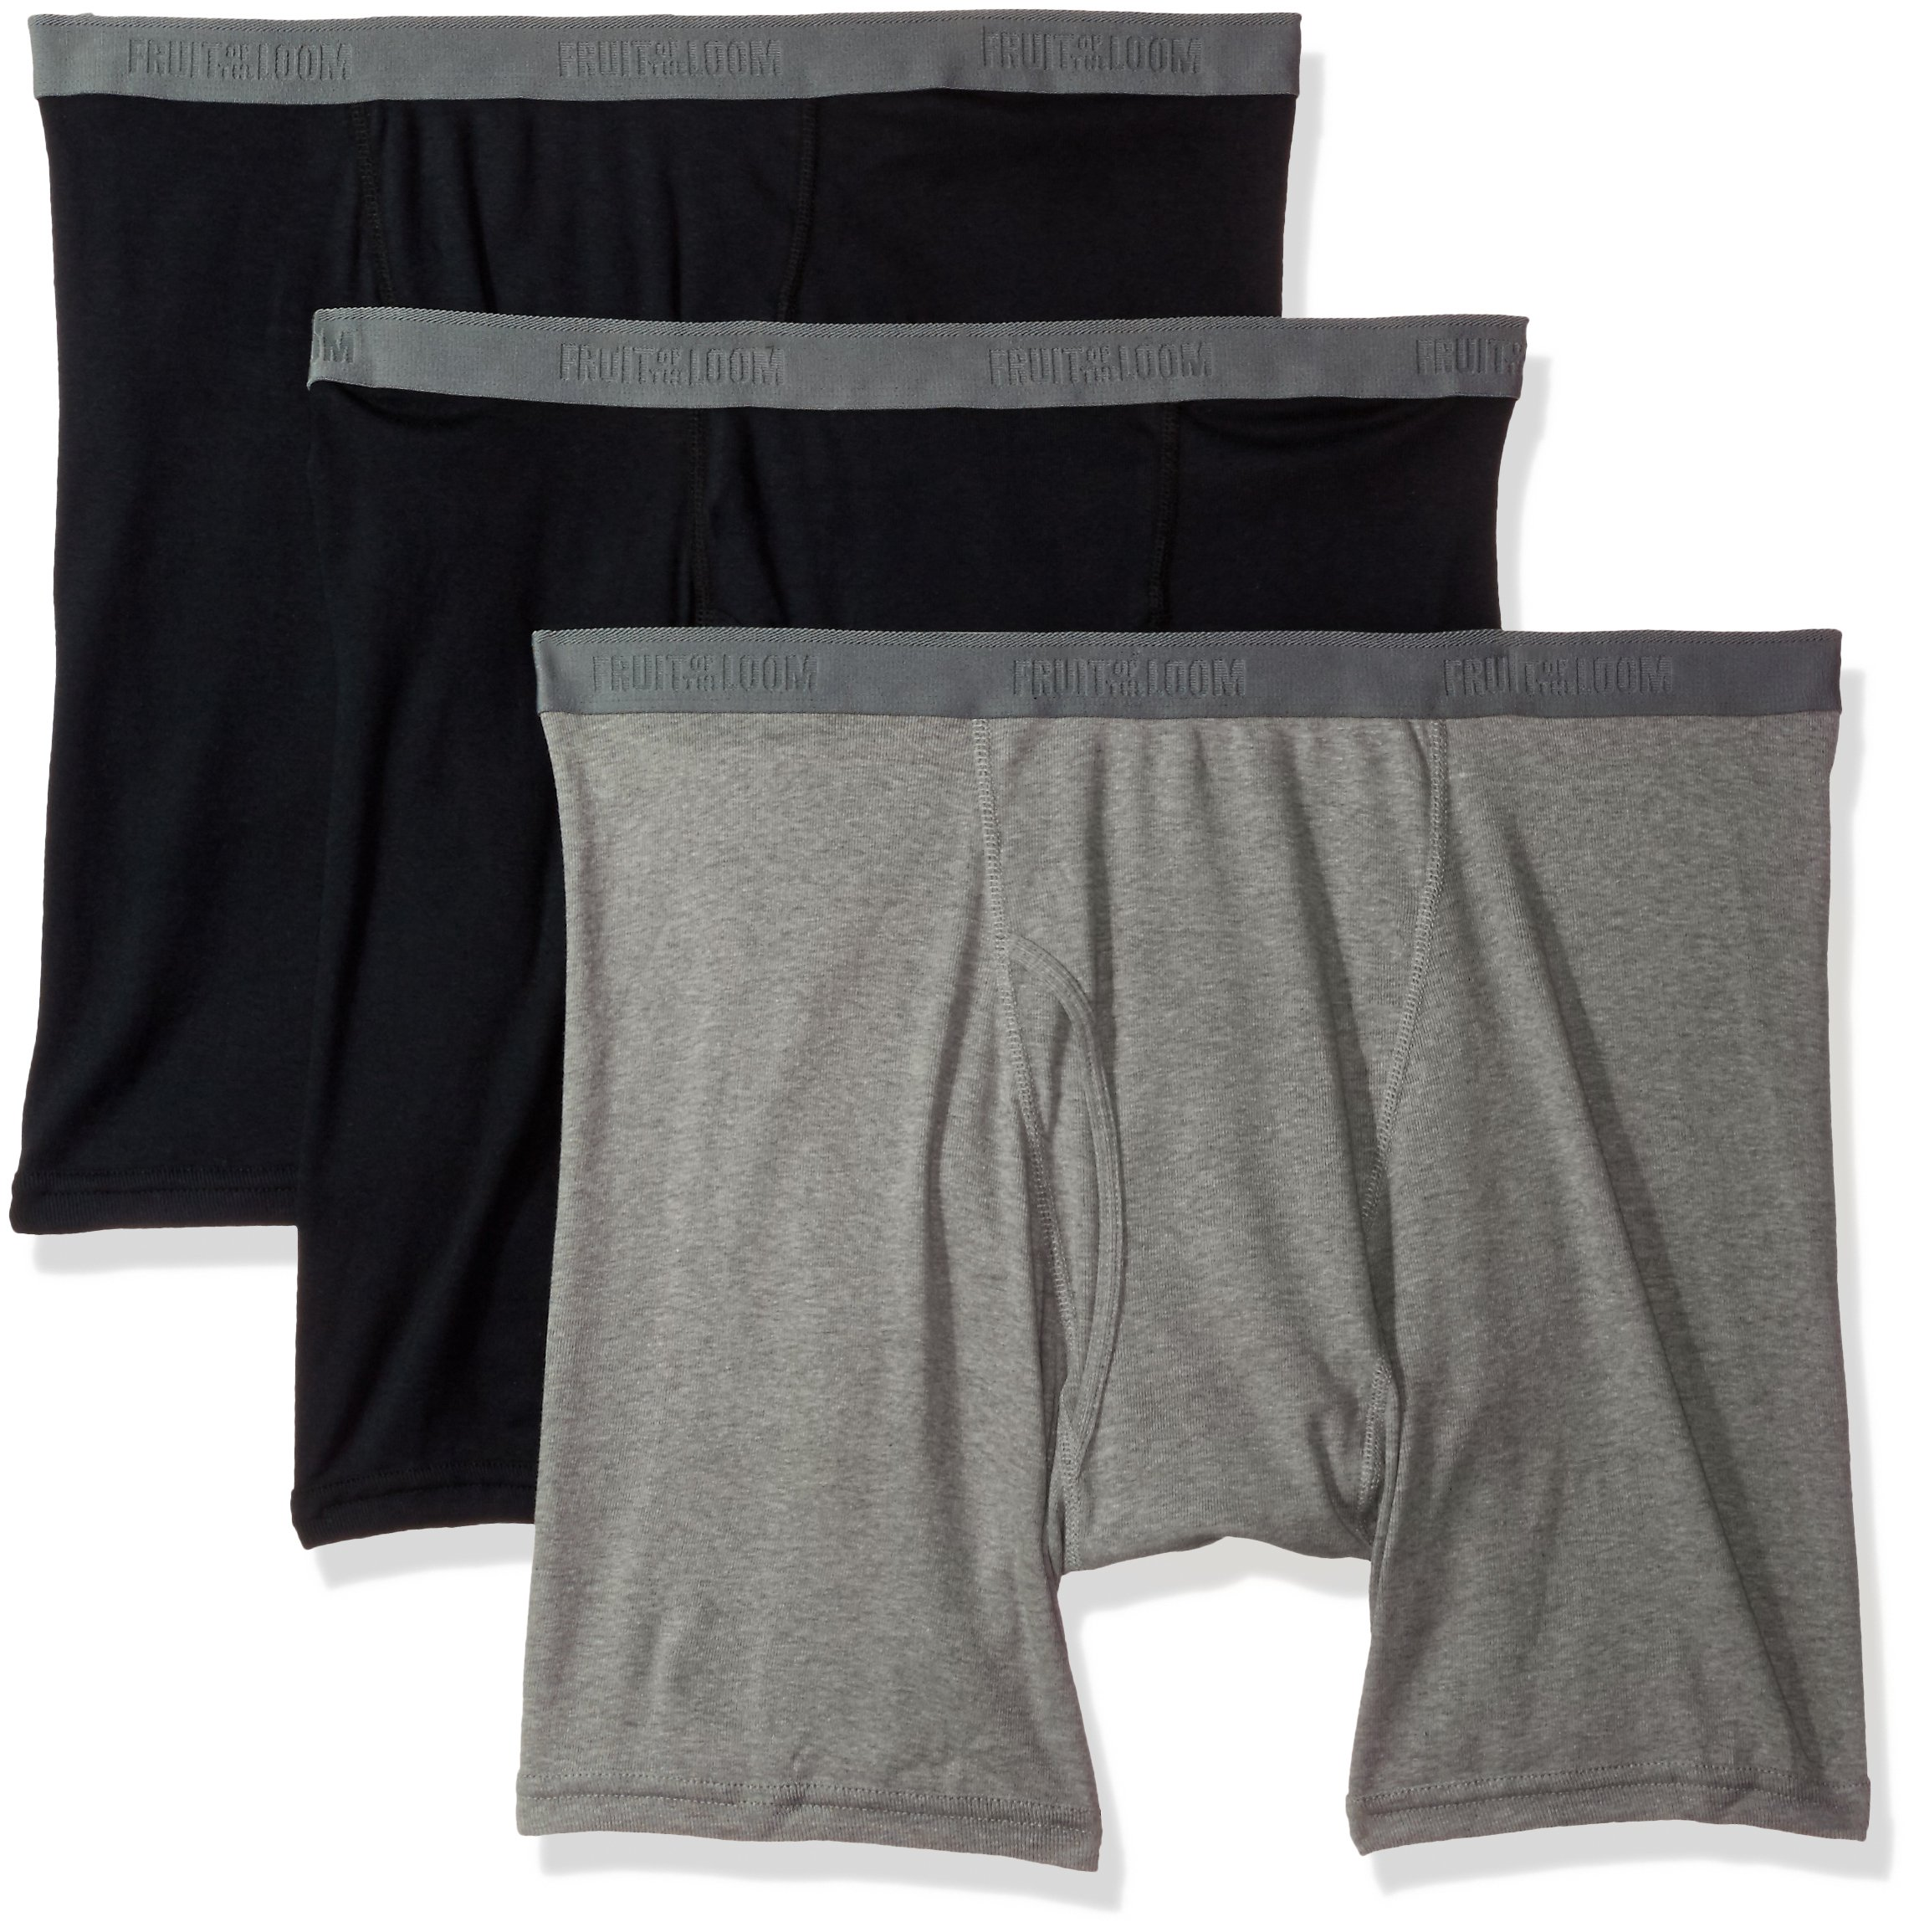 Fruit of the Loom Men's 3-Pack Big Man Premium Boxer Brief, Assorted, 3X-Large